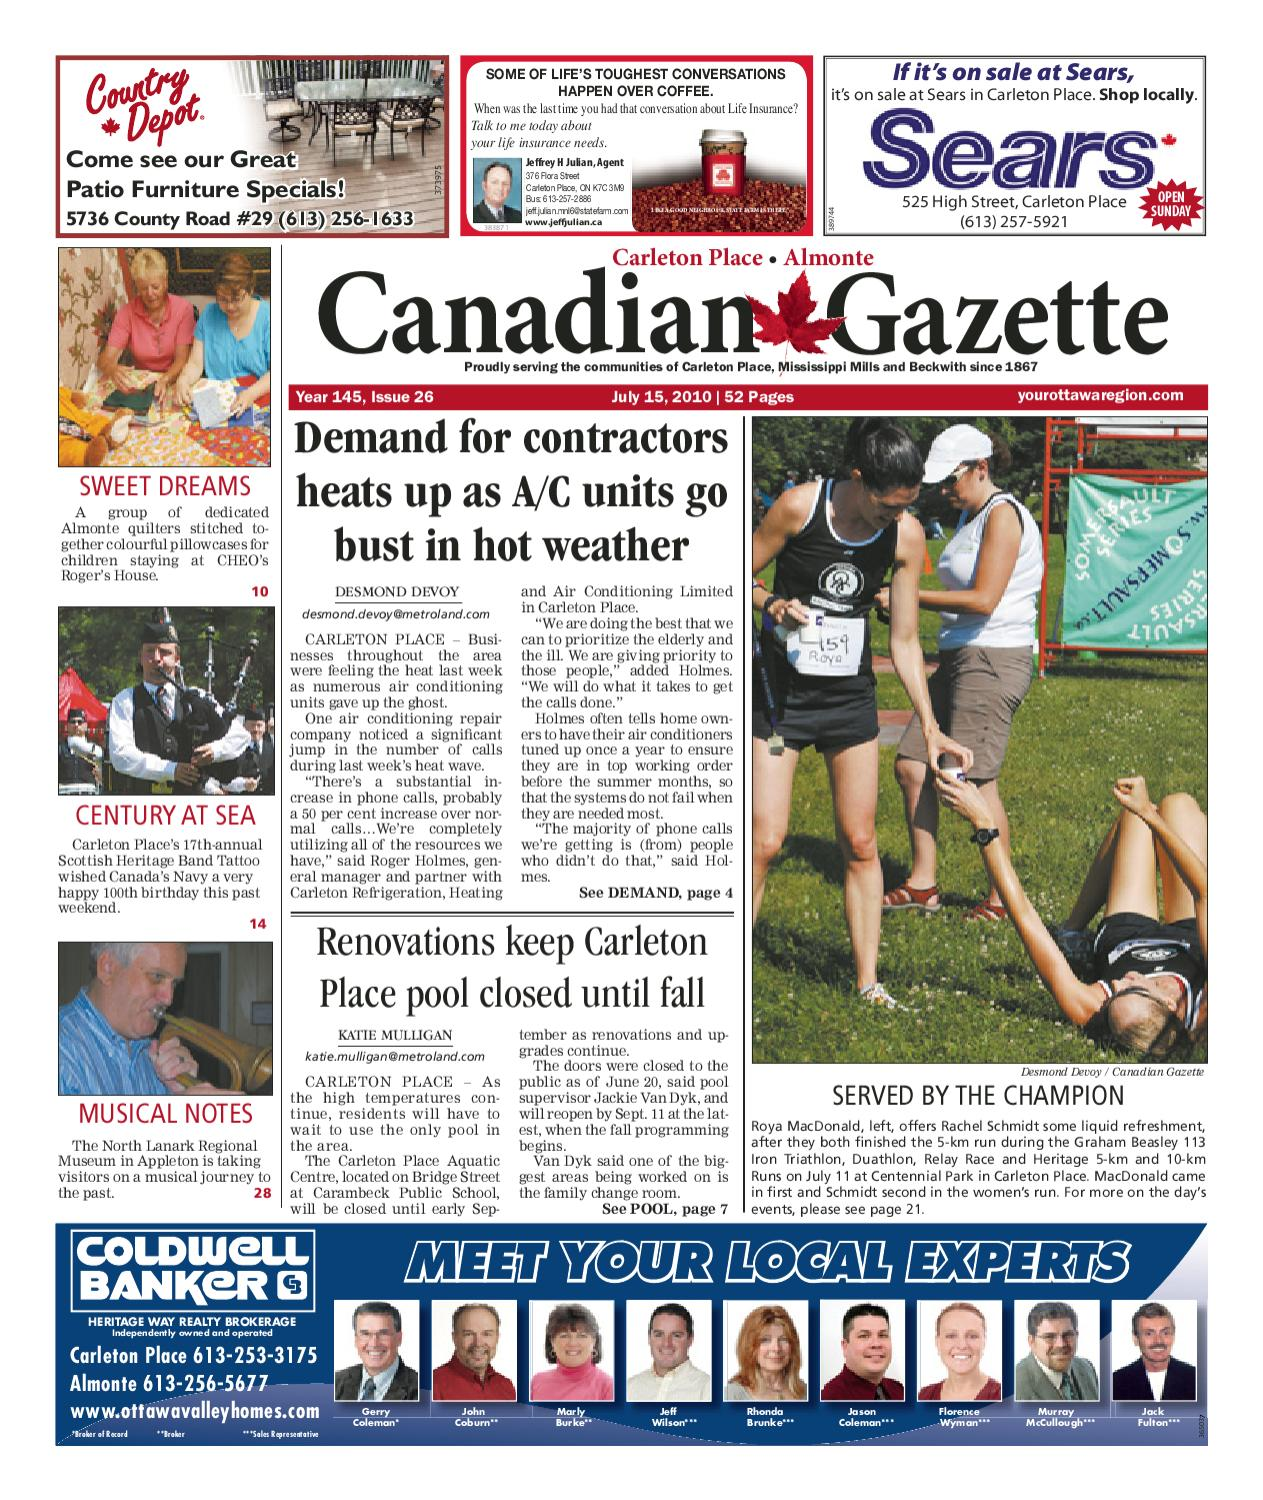 Carleton Place Almonte Canadian Gazette By Metroland Ottawa Issuu